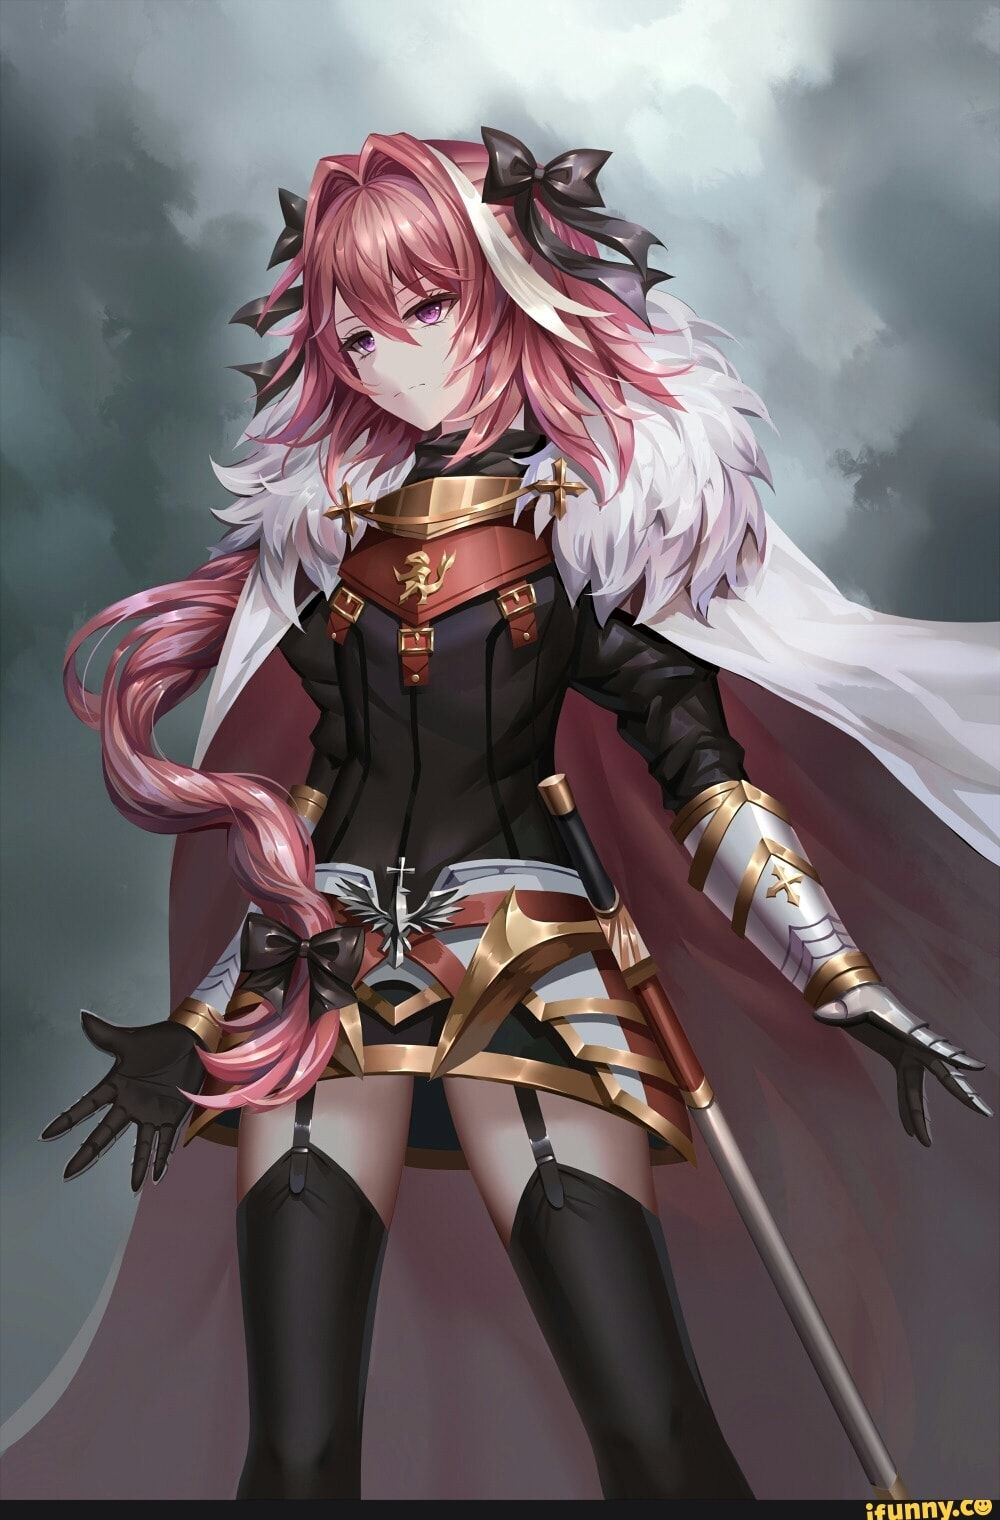 Found on ifunny astolfo fate fate anime series fate